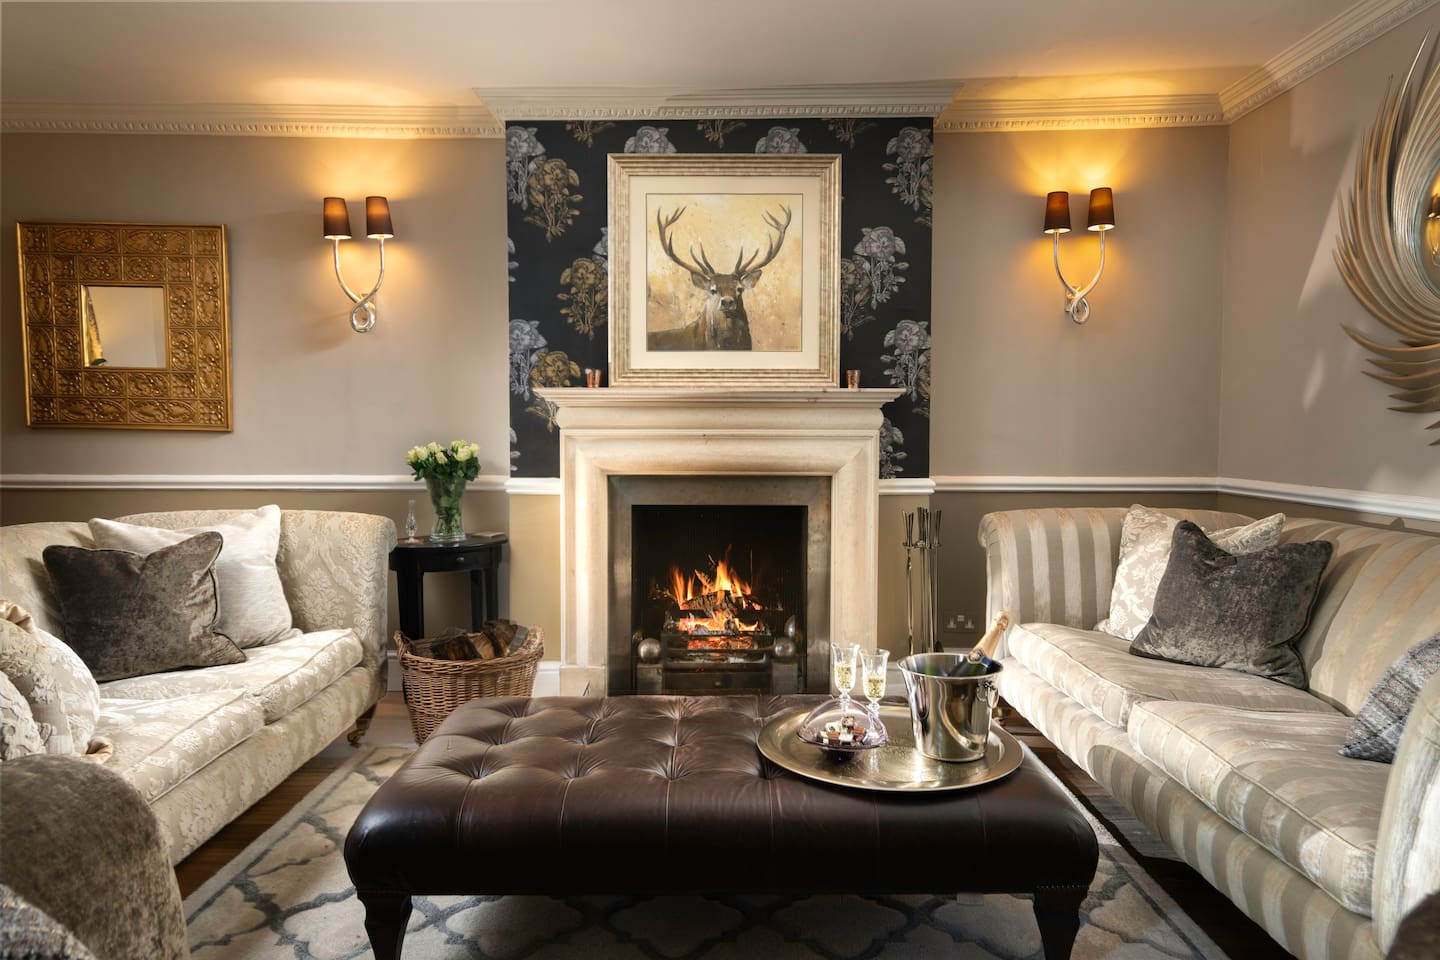 A very spacious sitting room comes with a seating area for 10 (3 sofas) around the fire which makes it perfect for winter days and nights. This stunning fireplace feature is made out of original Bath stone. There is a separate dining room and snug.